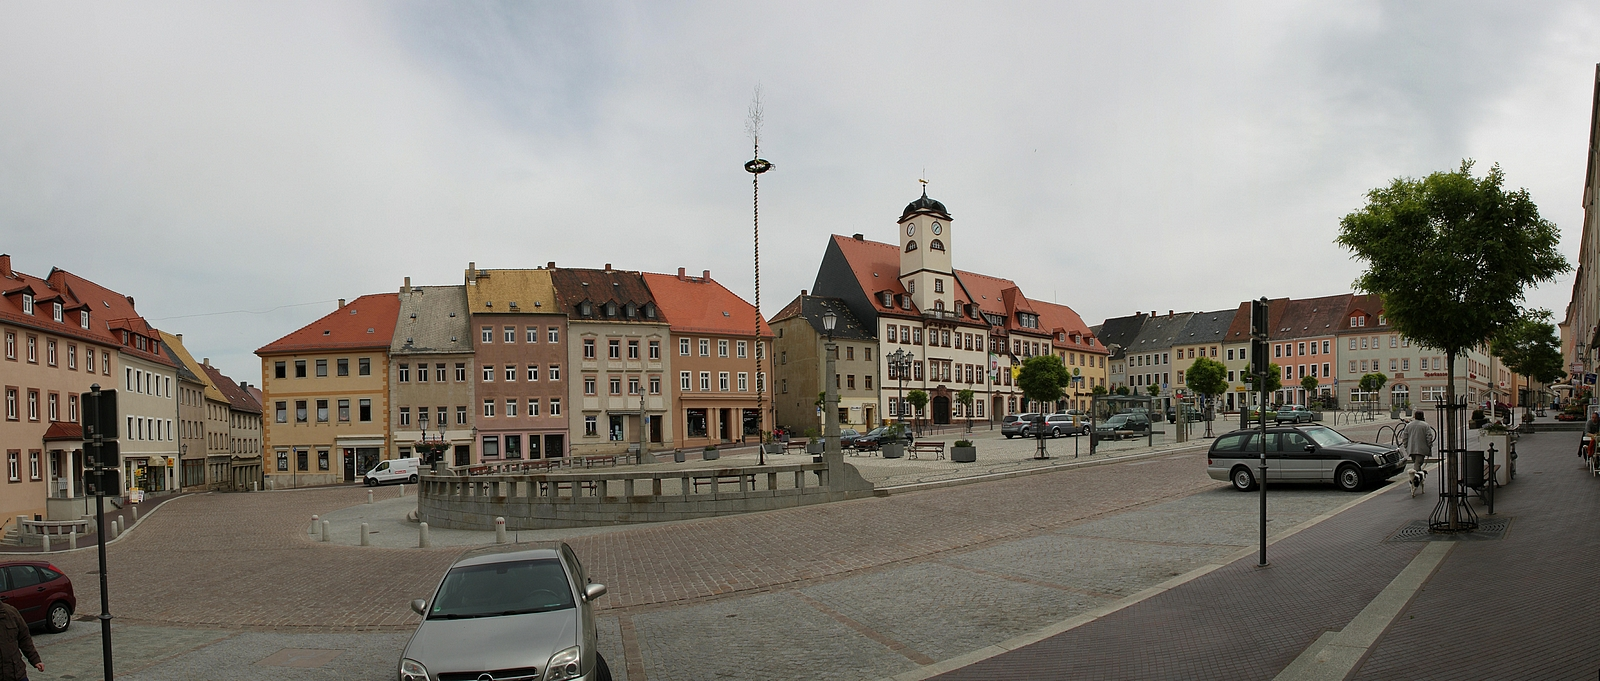 http://upload.wikimedia.org/wikipedia/commons/c/cb/Leisnig_-_Marktplatz_Panorama_%2802-2%29.jpg